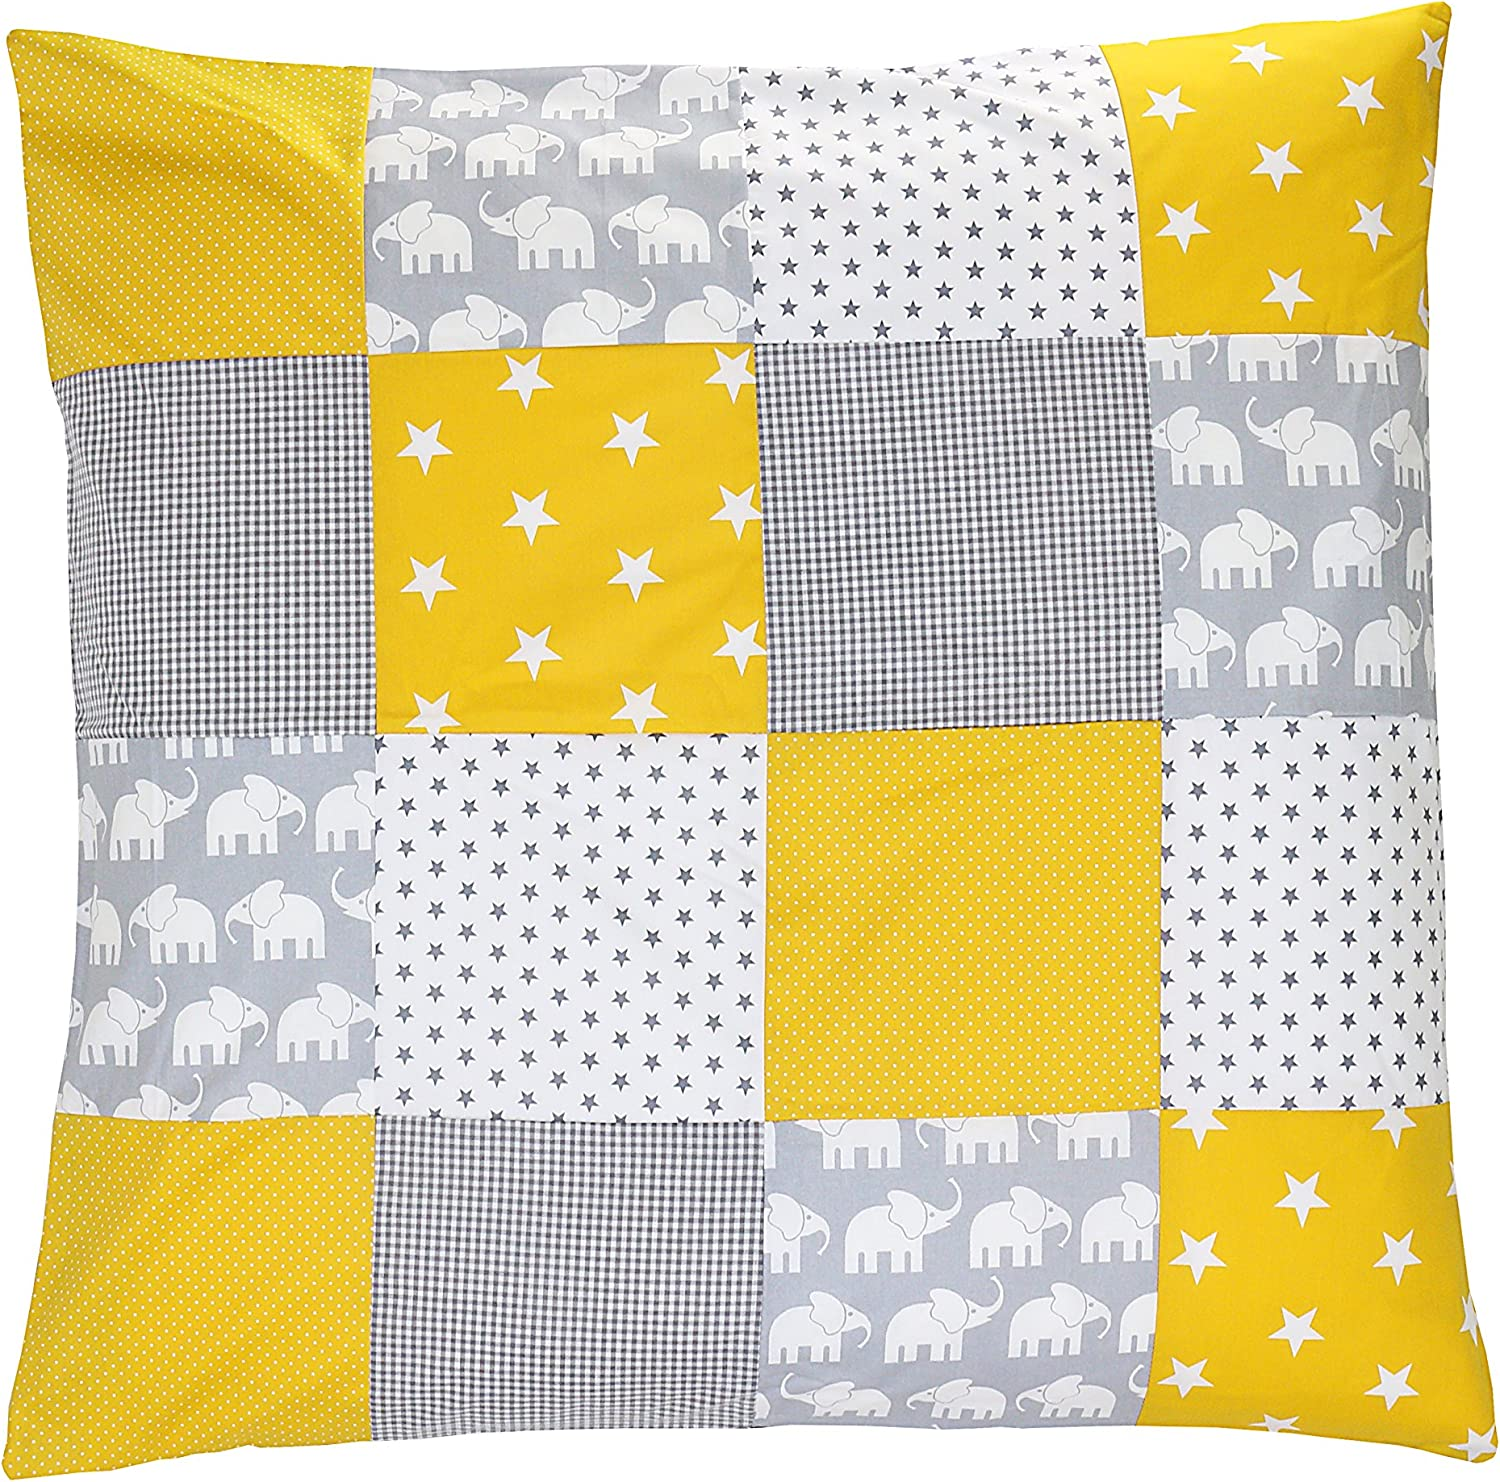 80 x 80 cm can Also be Used on pram Blankets or Decorative Cushions; Motifs: Anchors, Stars ULLENBOOM//® Baby Quilt Cover Blue Light Blue Grey